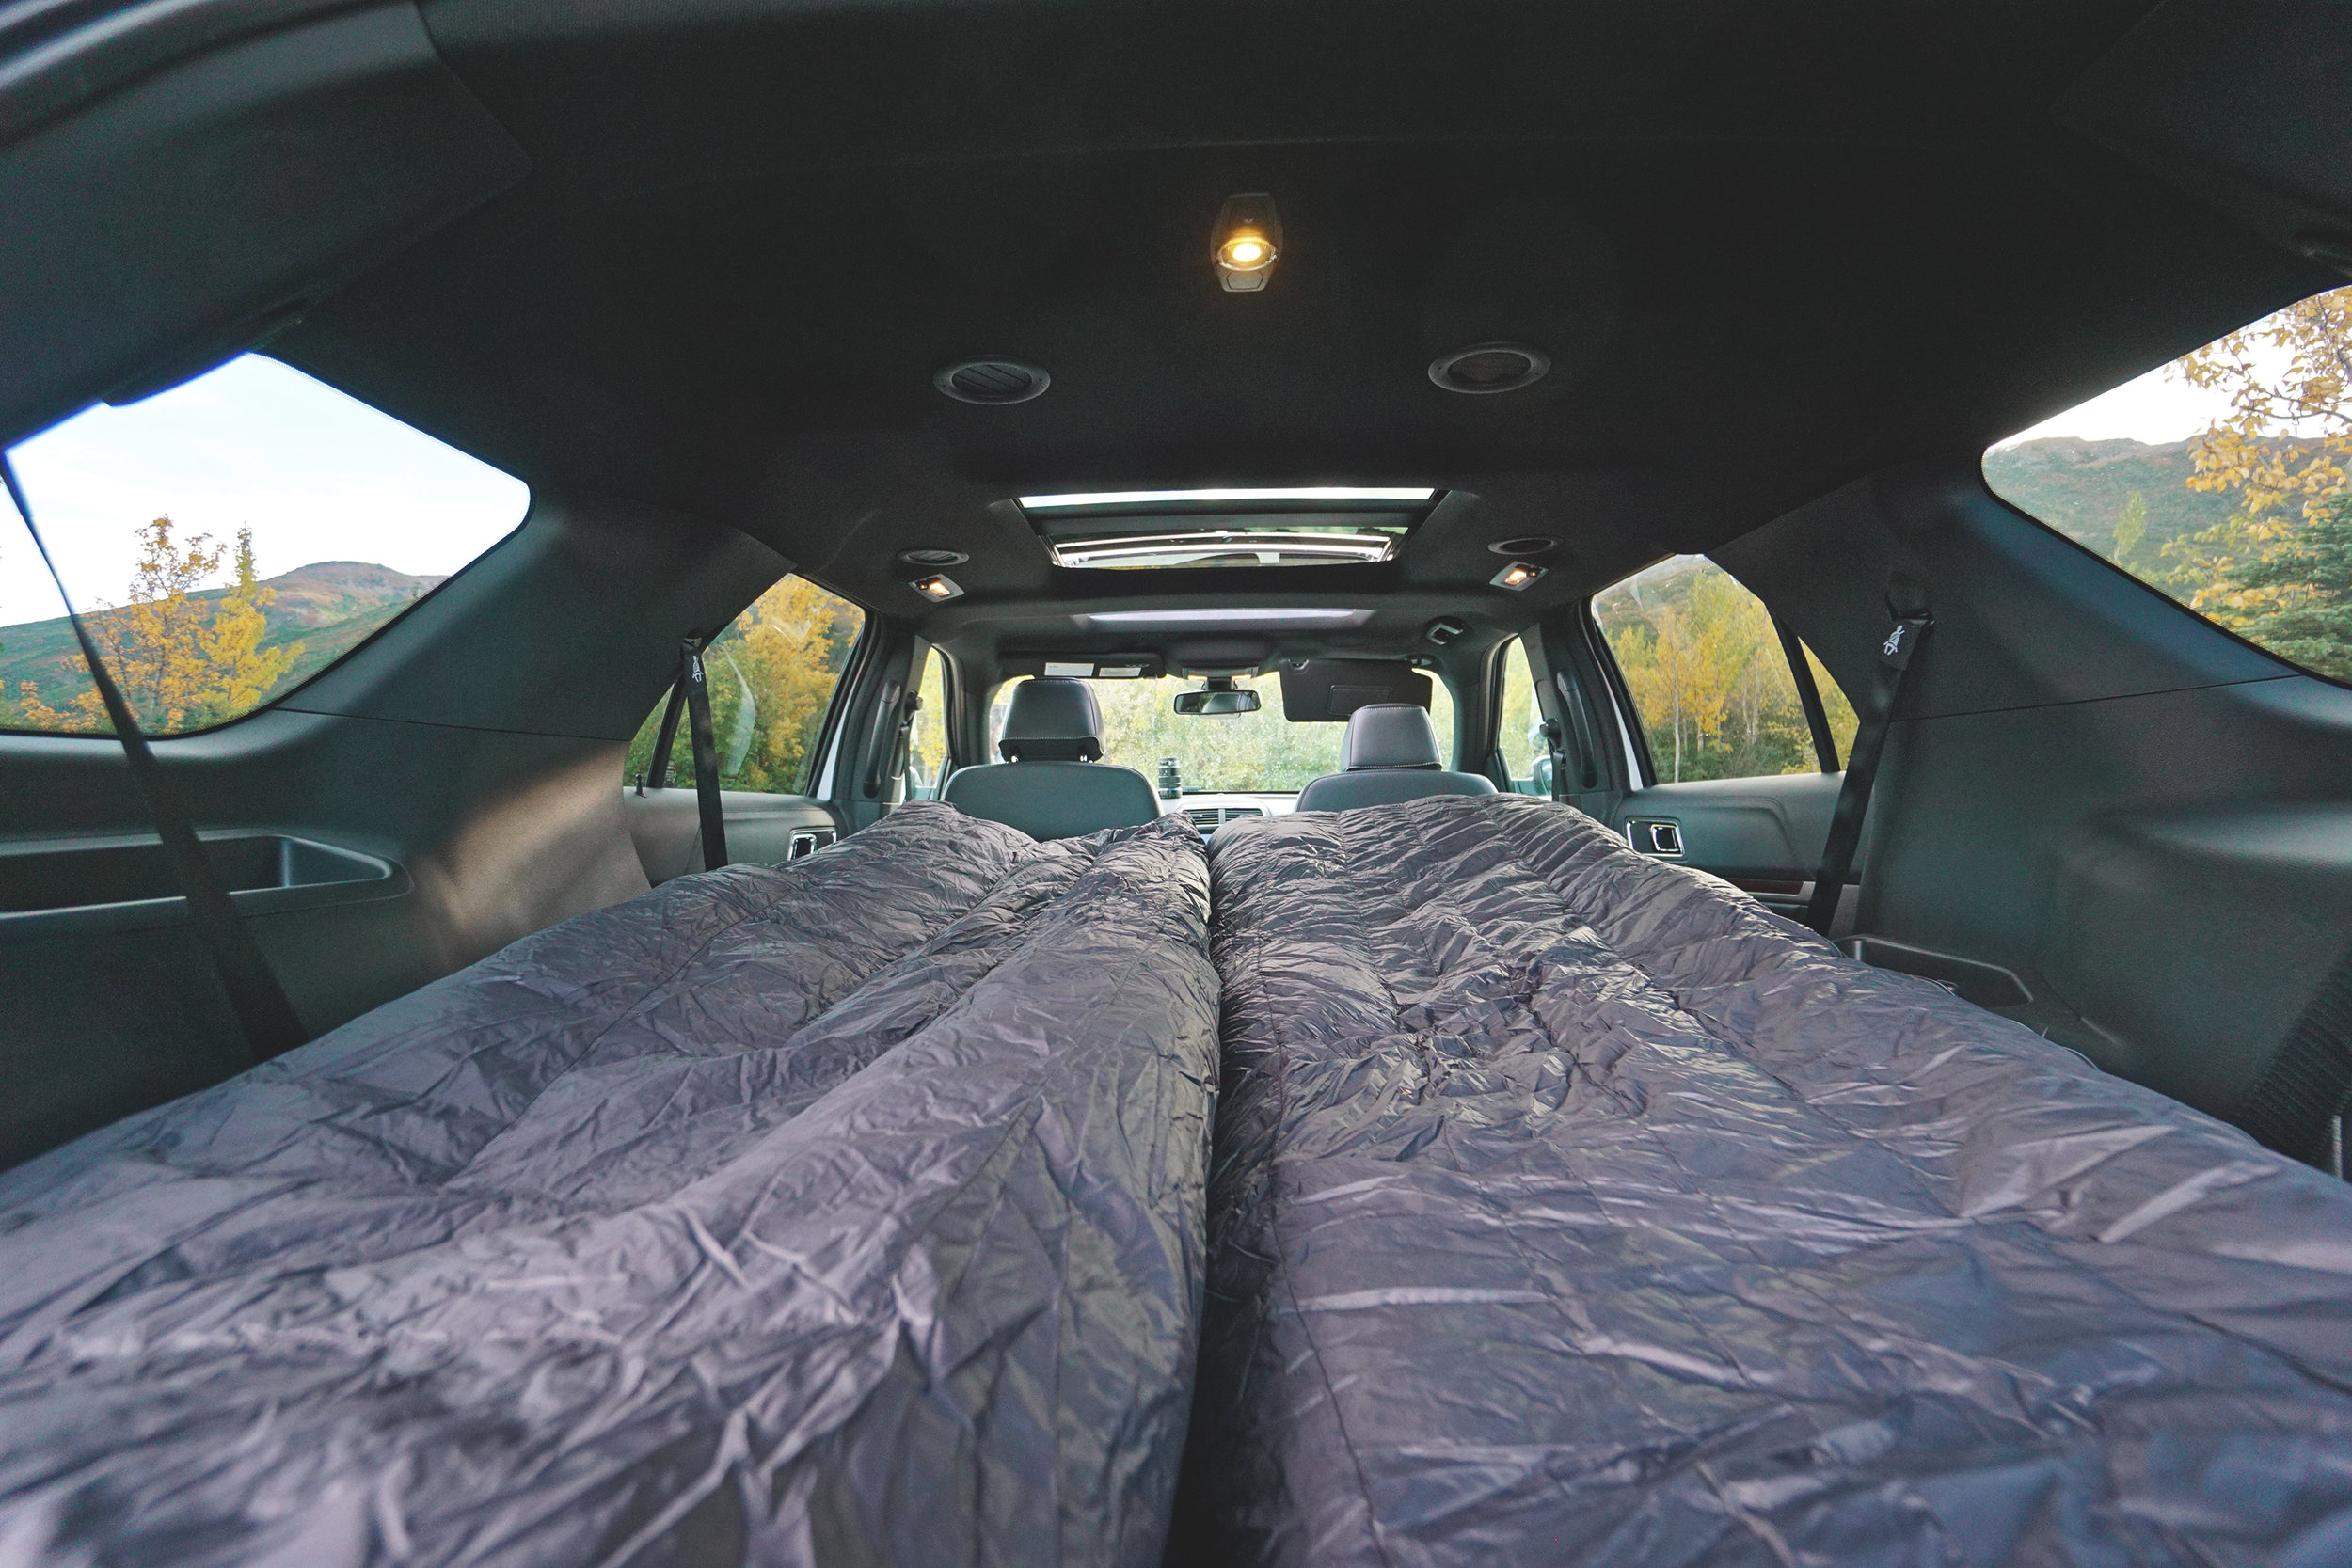 Ford Expedition DIY Sleeper Camper Bed Conversion